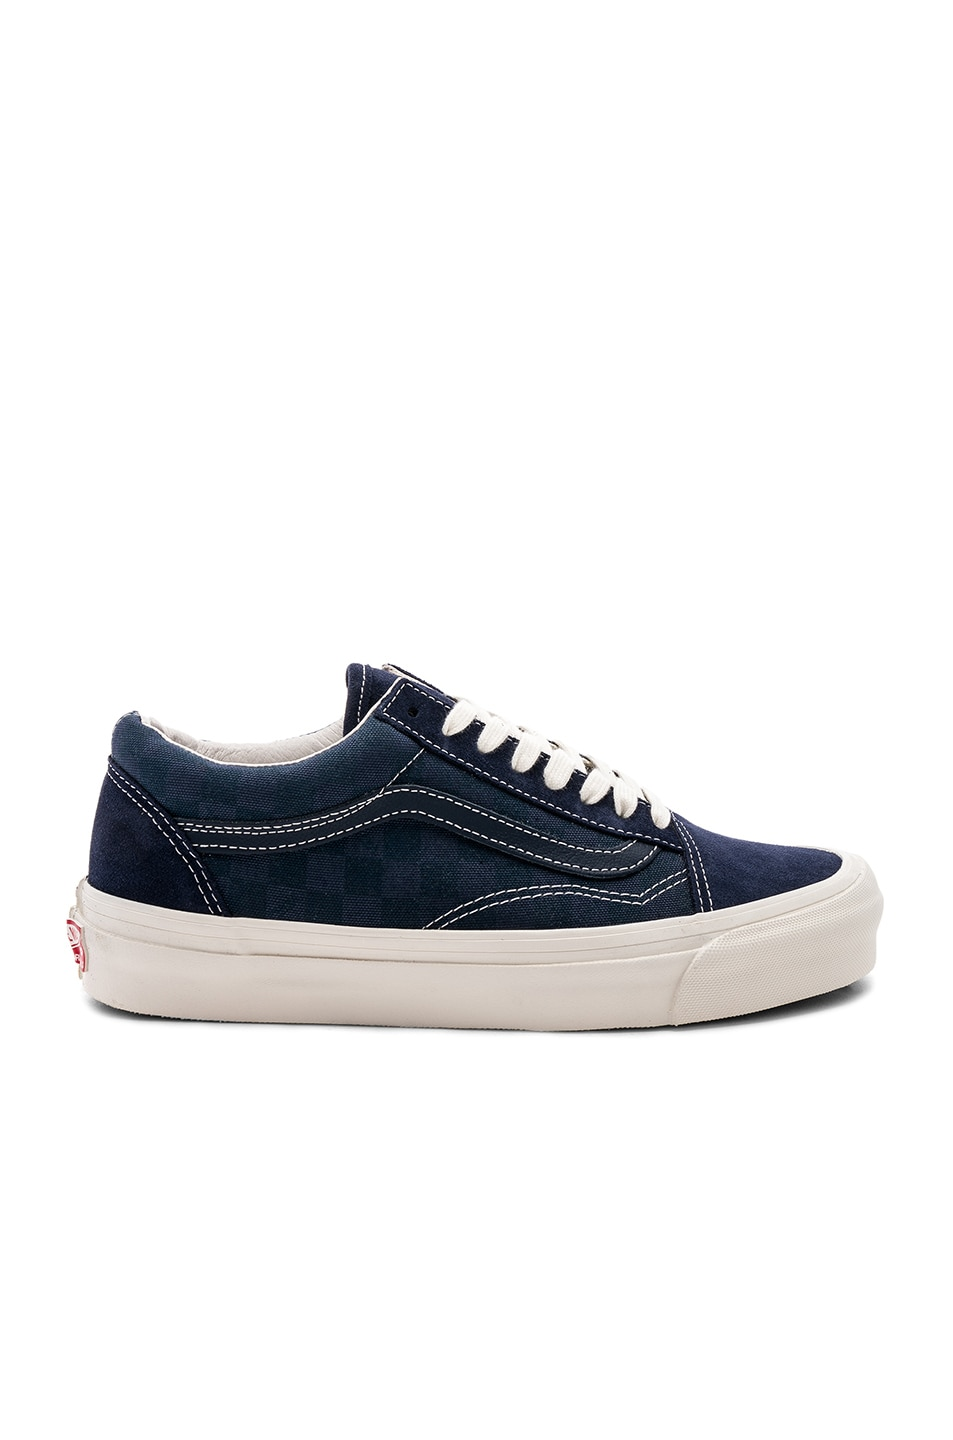 170c6e1c20 Image 1 of Vans Vault OG Old Skool LX in Checkerboard   Majolica Blue